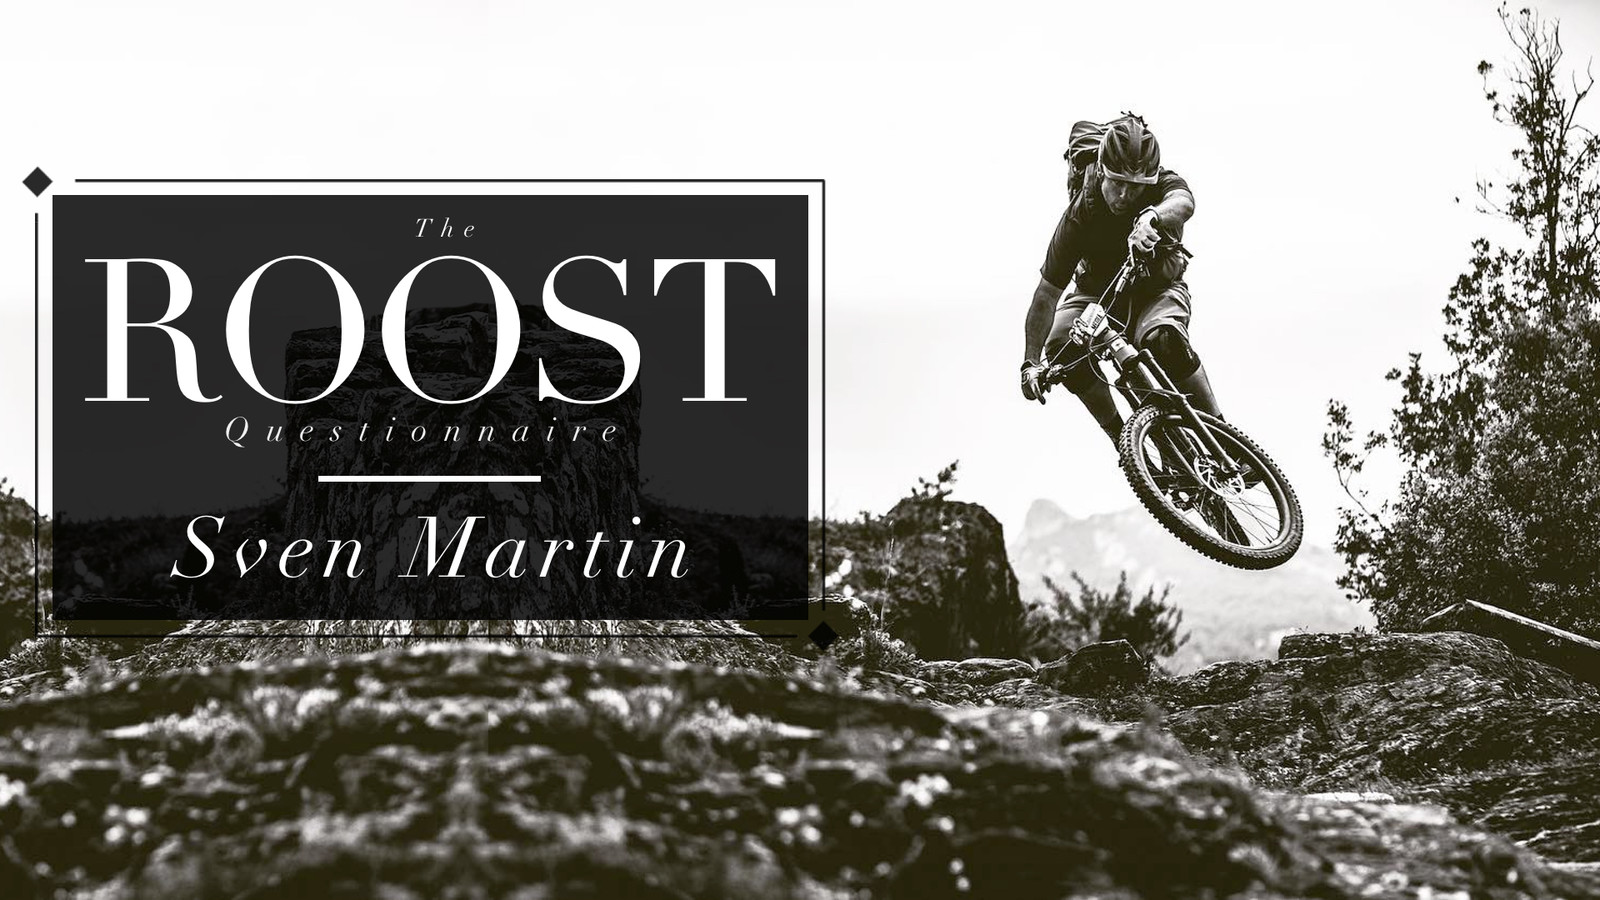 The ROOST Questionnaire #9, Sven Martin